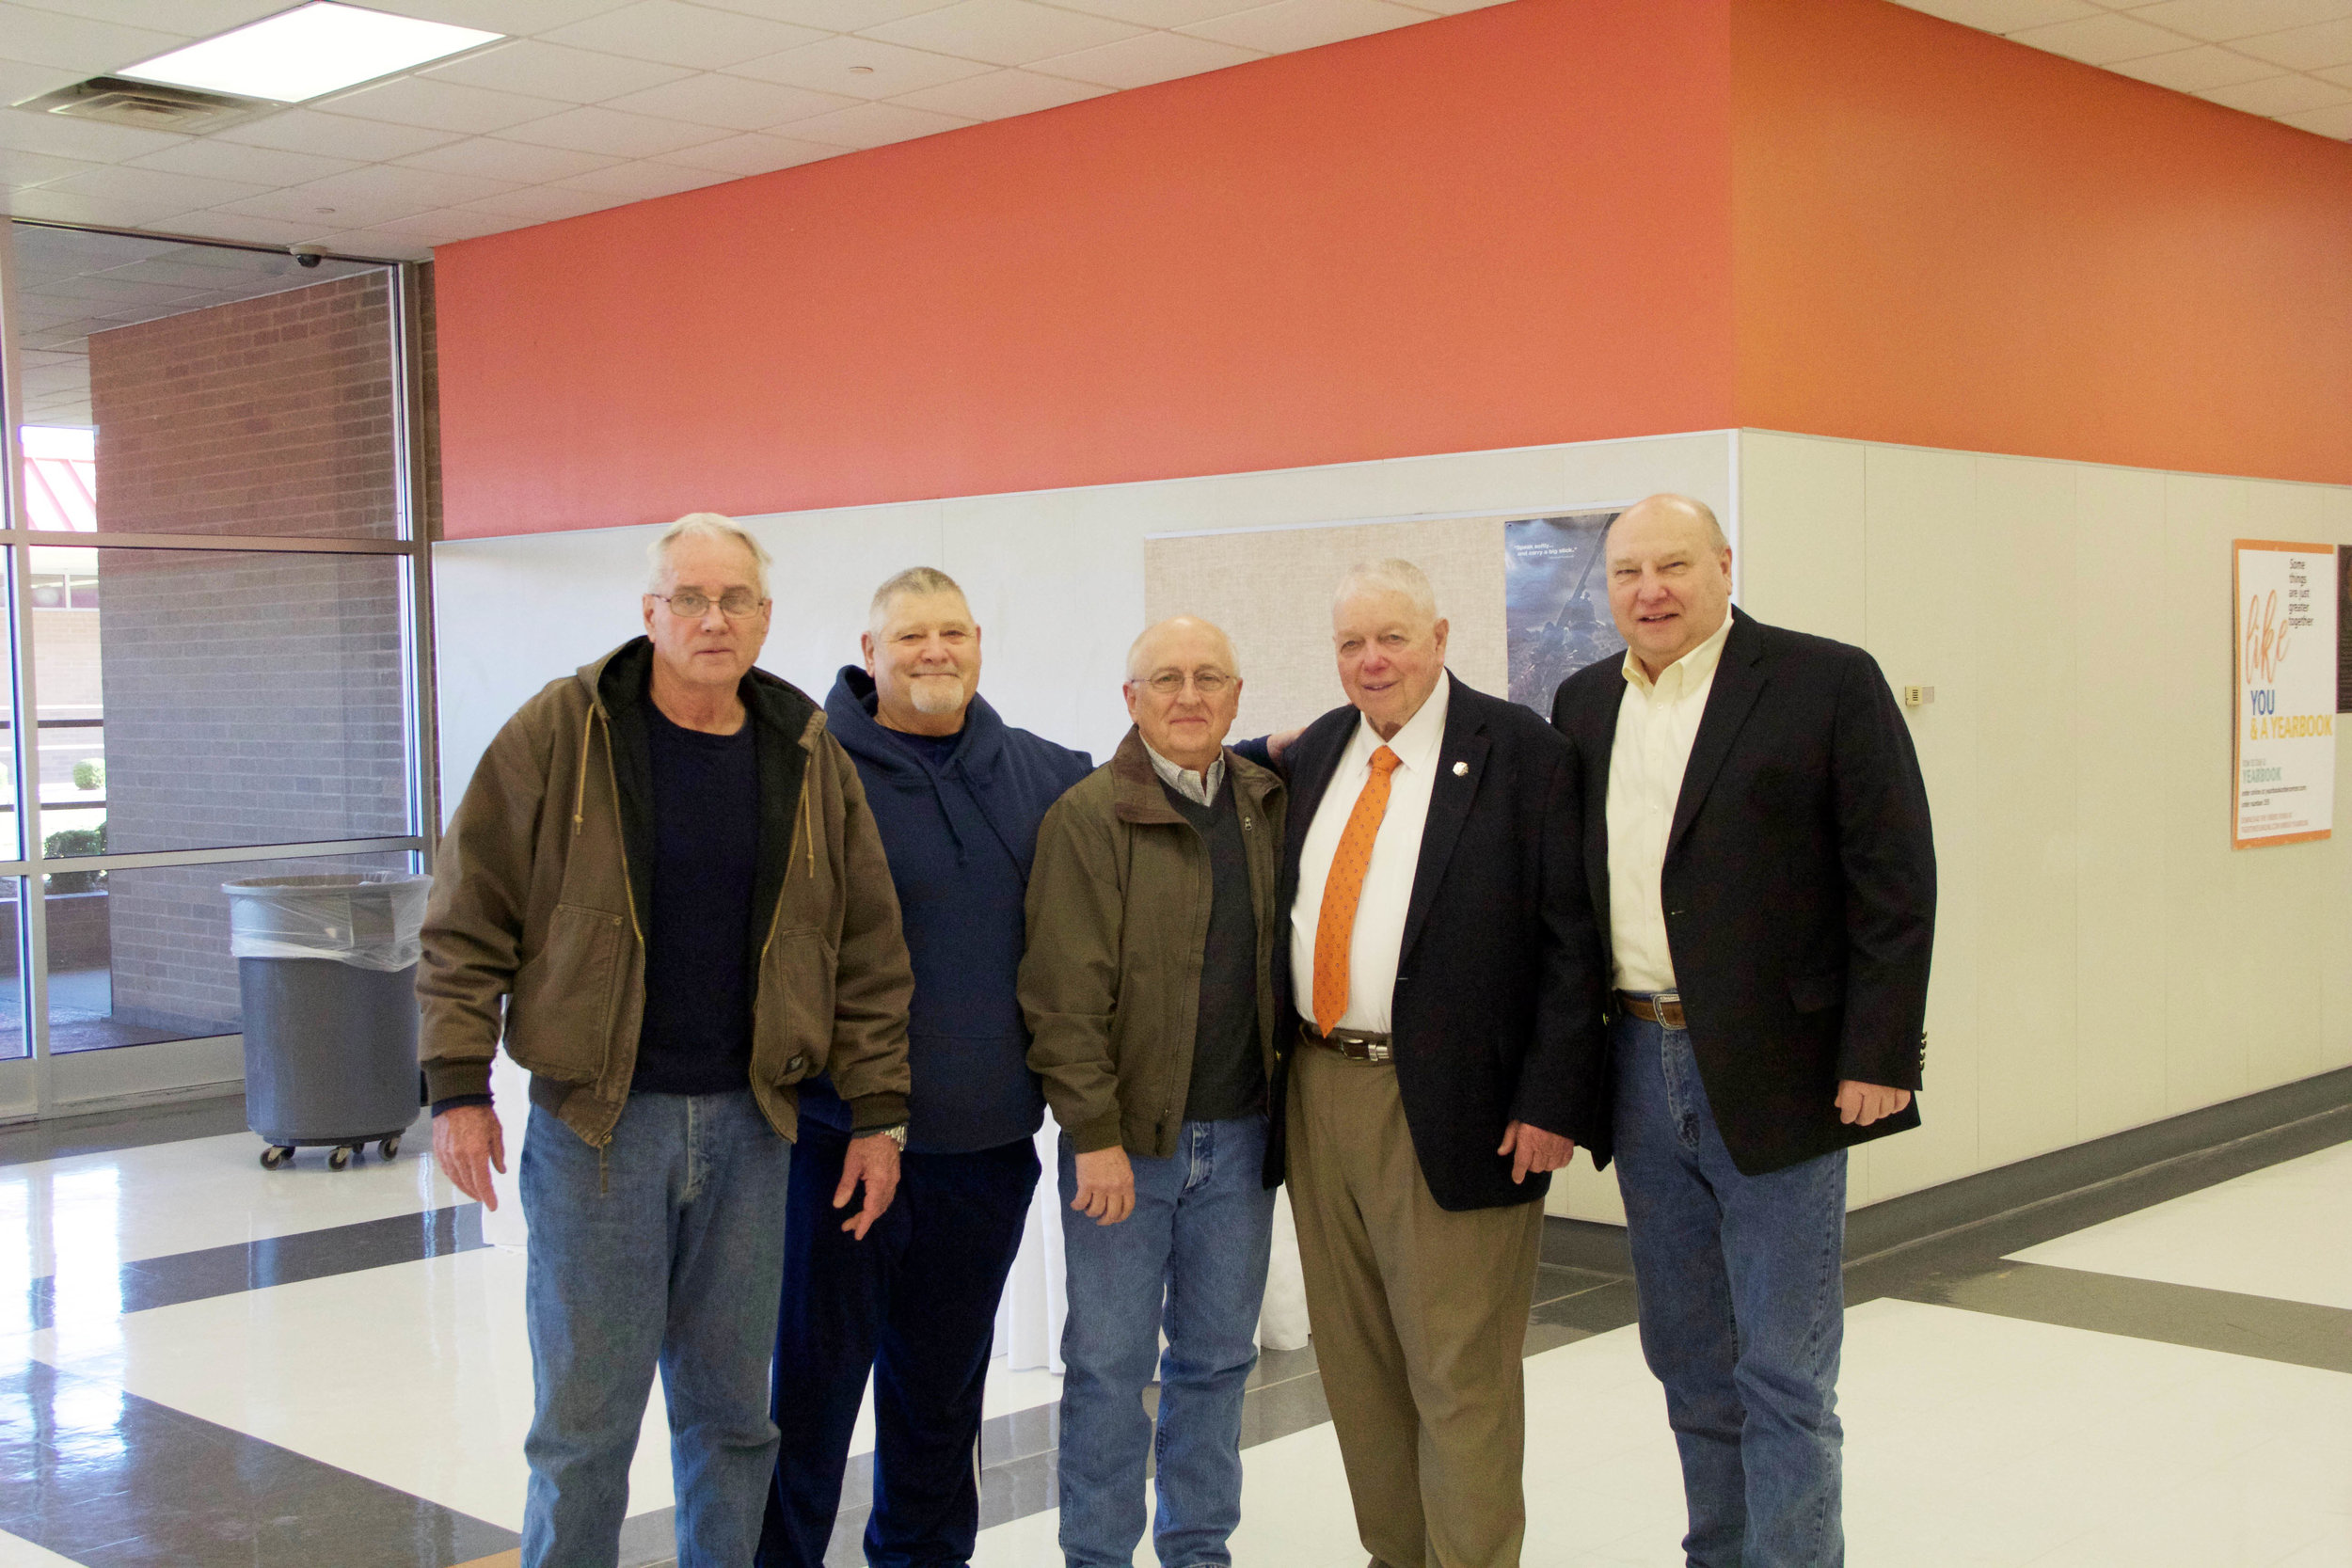 Ron Burnett, Danny McWilliams, Dr. Tommy Reynolds, Allen Nance and David Easley